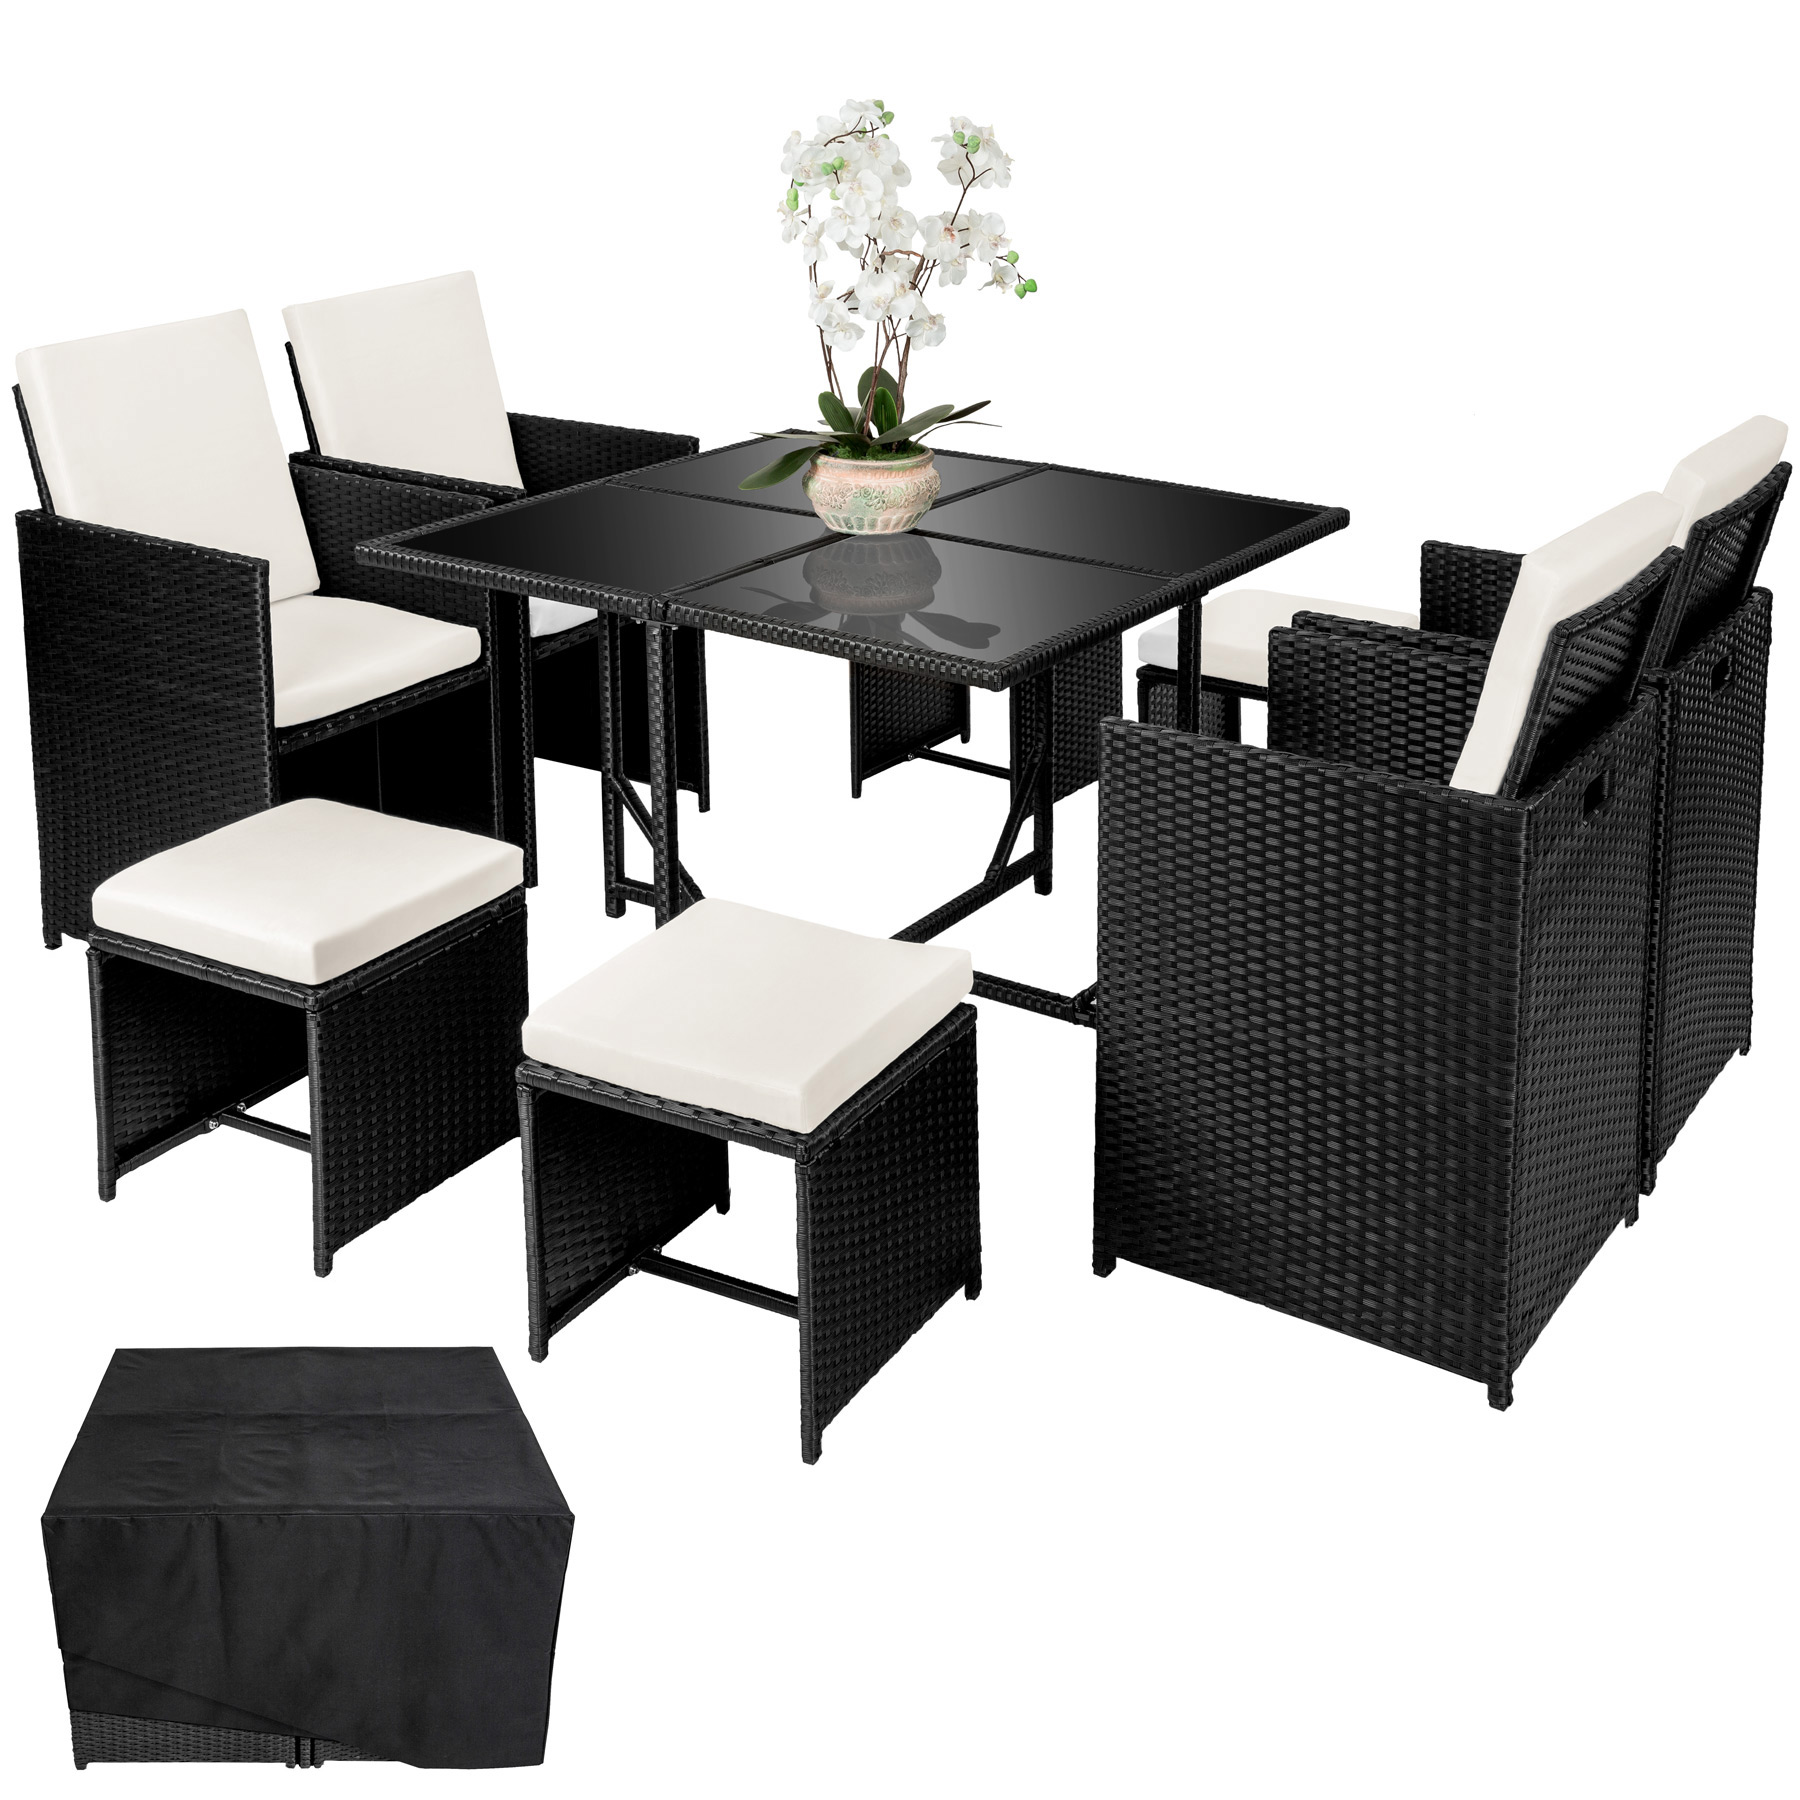 poly rattan sitzgarnitur gartenm bel essgruppe cube lounge set 4 st hle b ware ebay. Black Bedroom Furniture Sets. Home Design Ideas